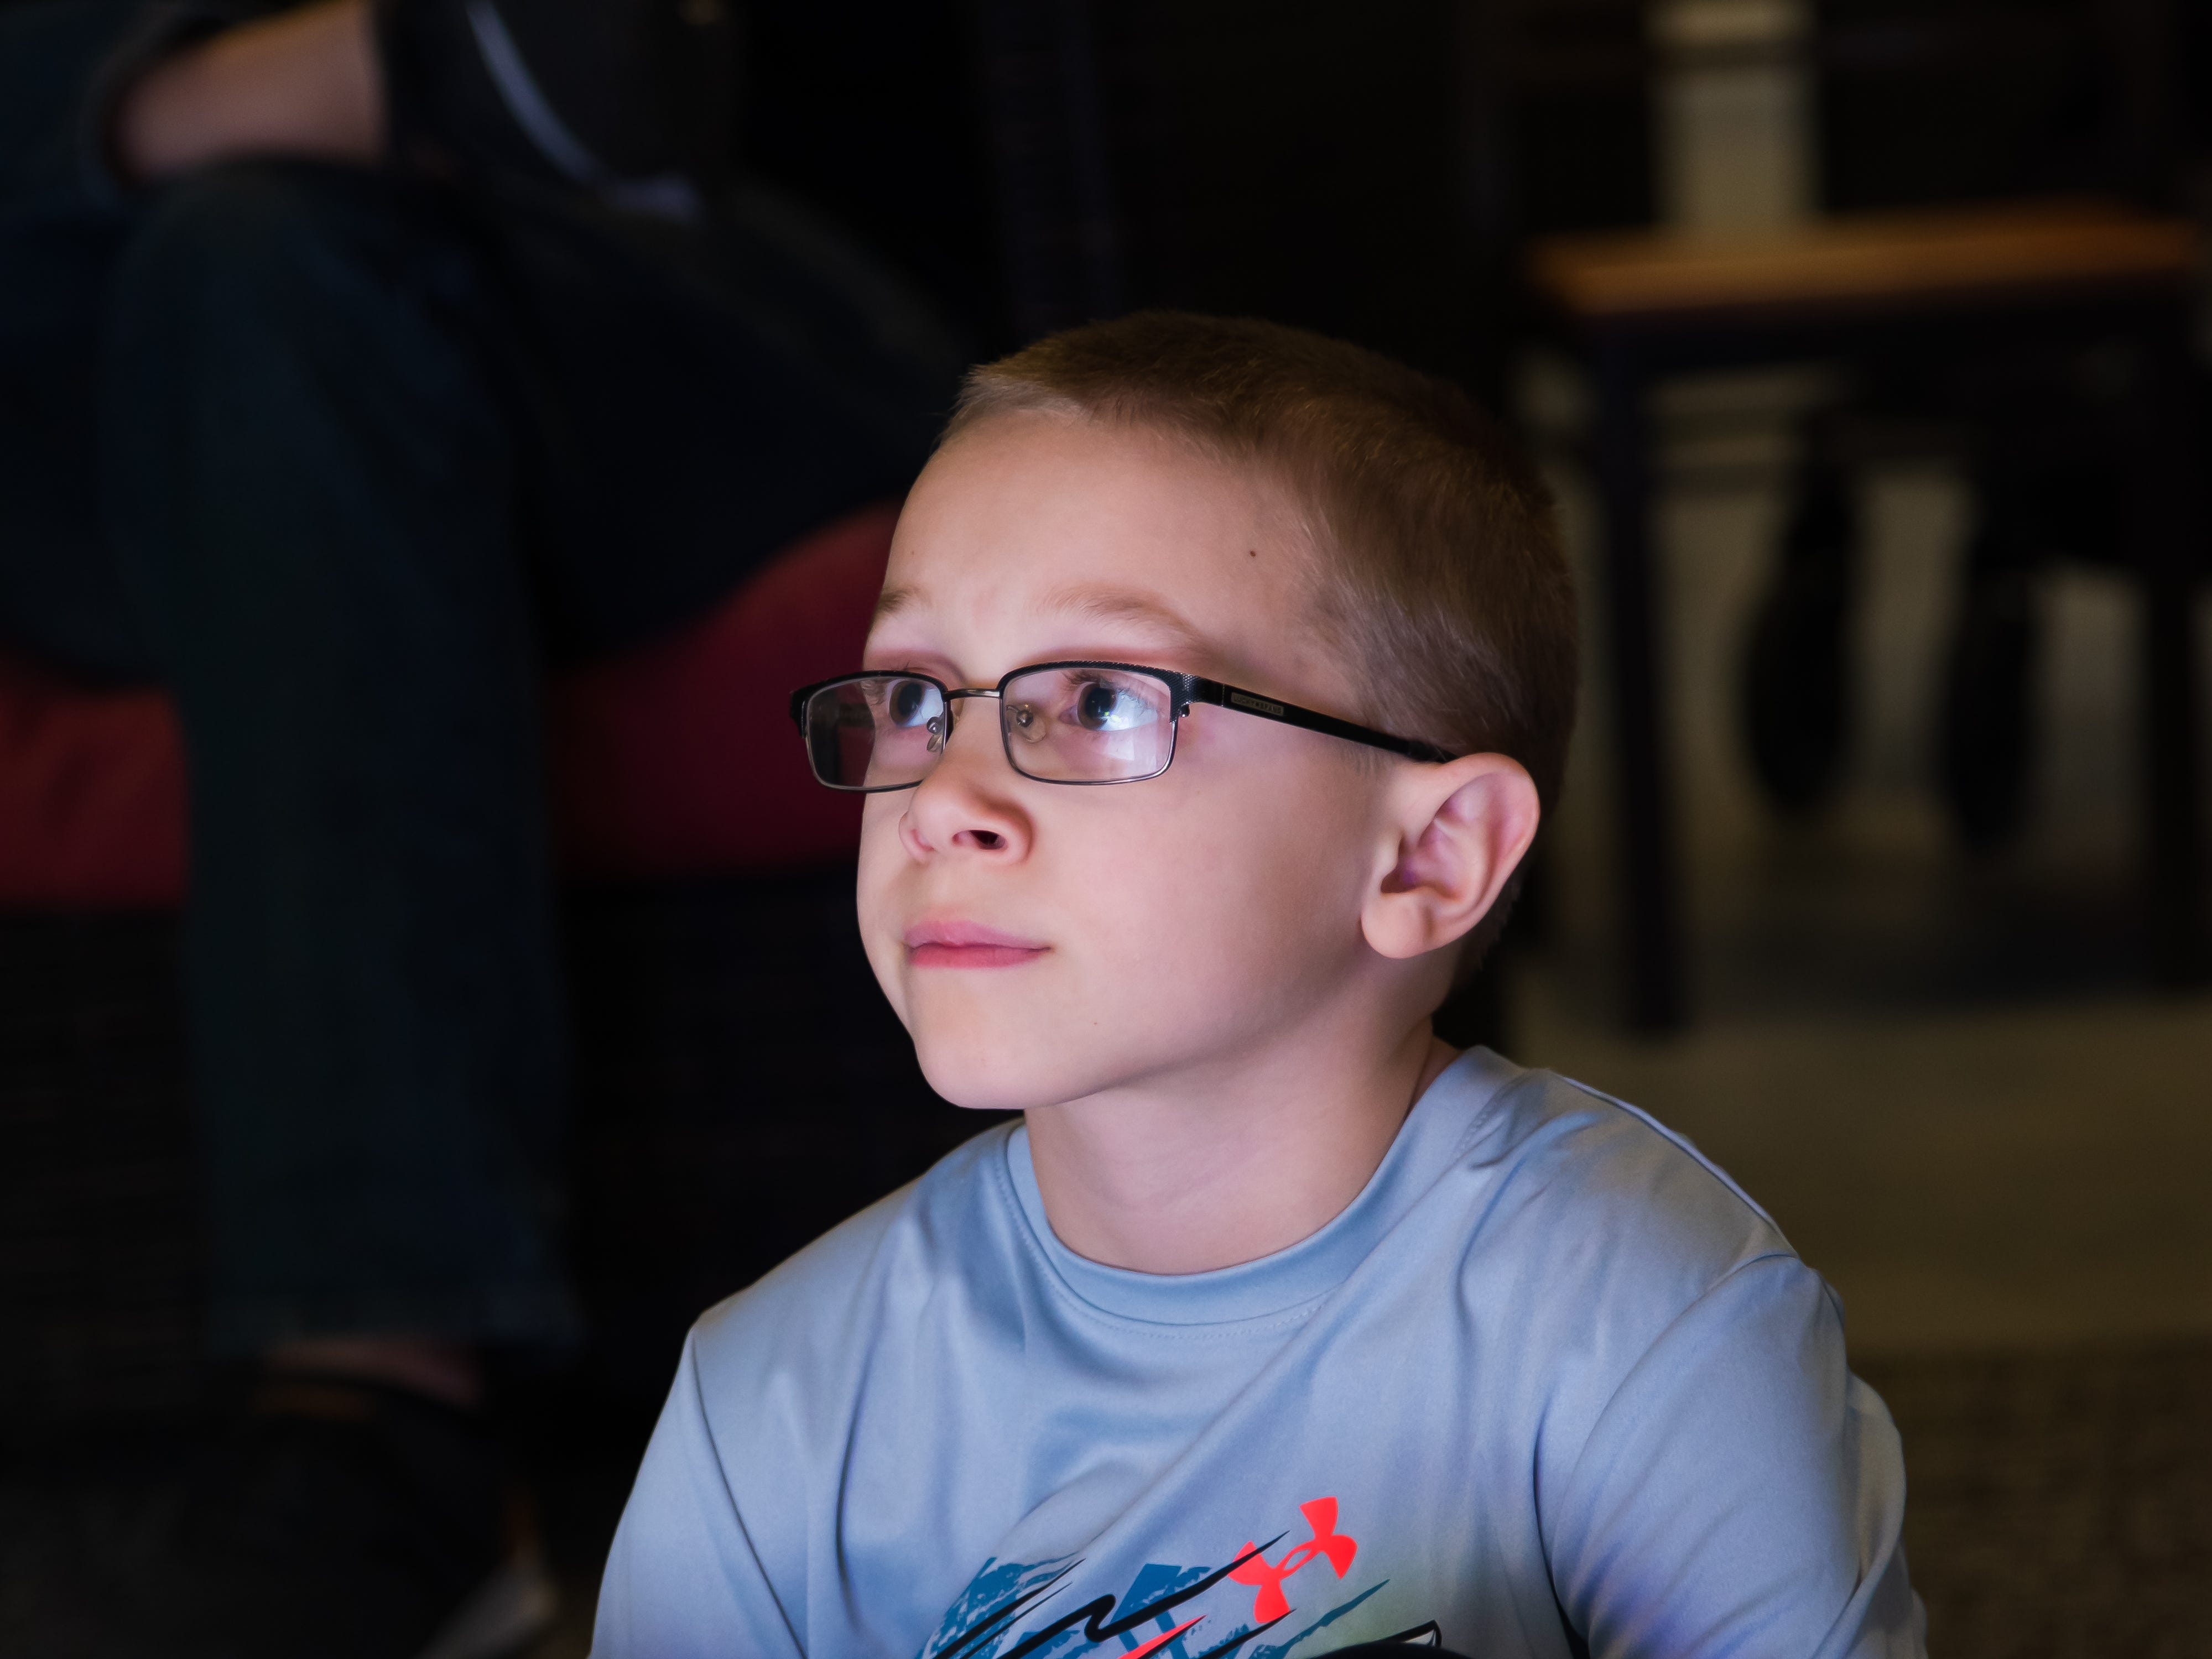 Parker Mundell, 7, of Altoona watches an experiment Wednesday, March 20, 2019, during a Science Center program at the Outlets of Des Moines in Altoona.